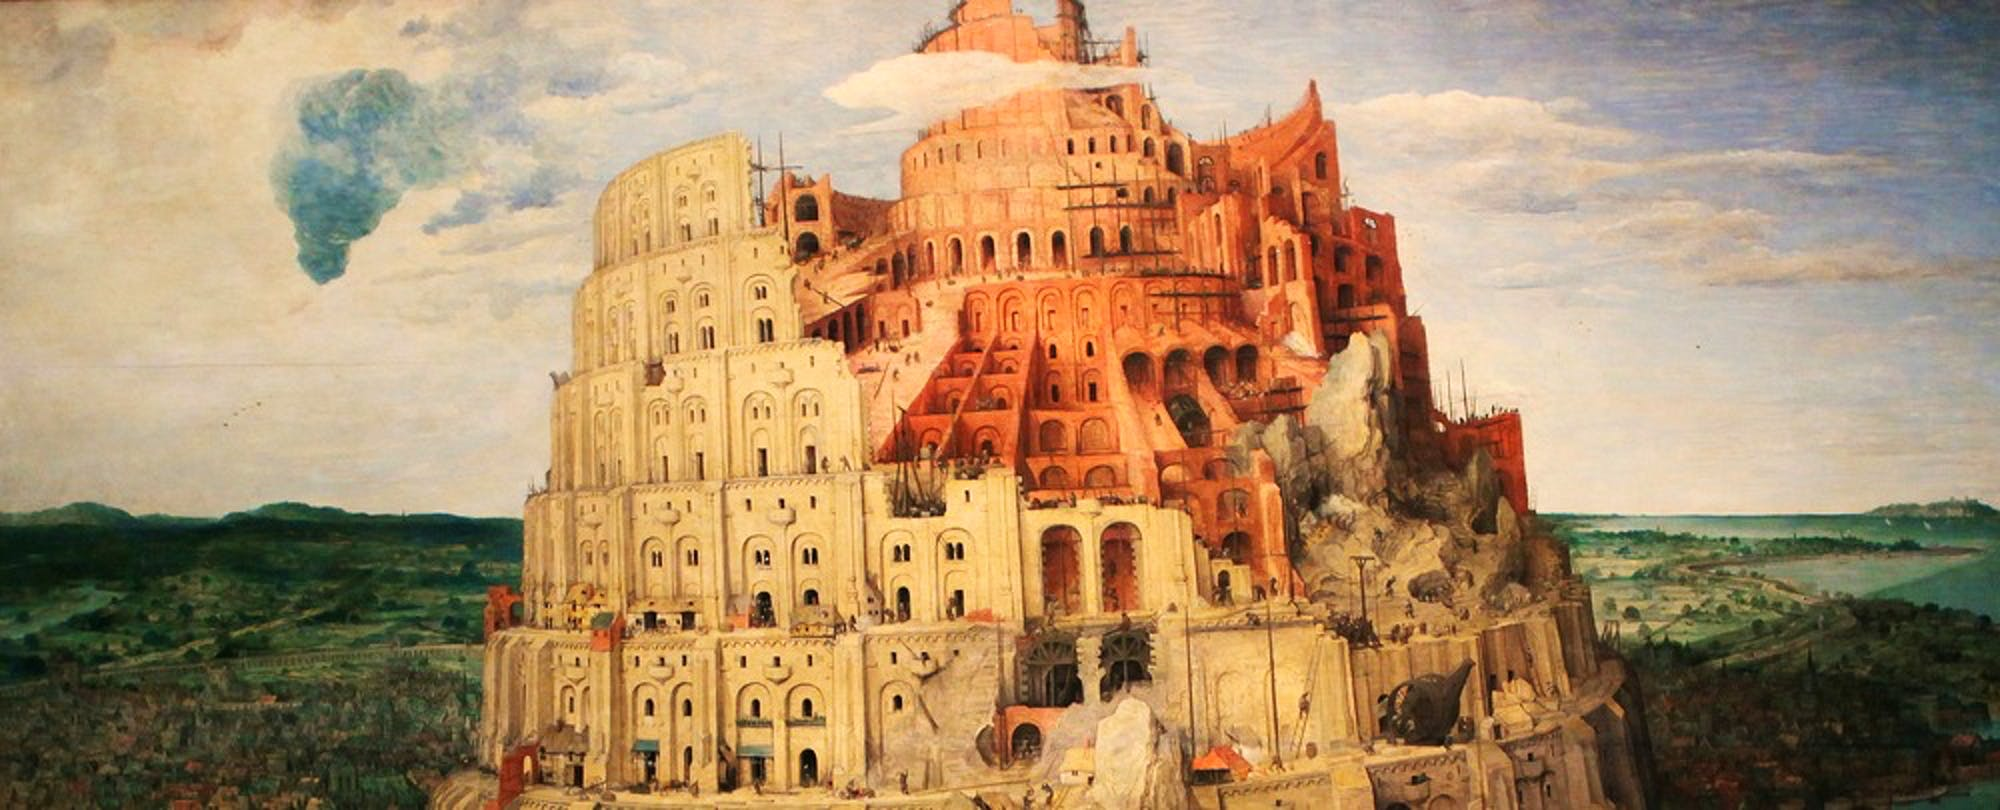 In Search of a Tower of Babel for Credentials